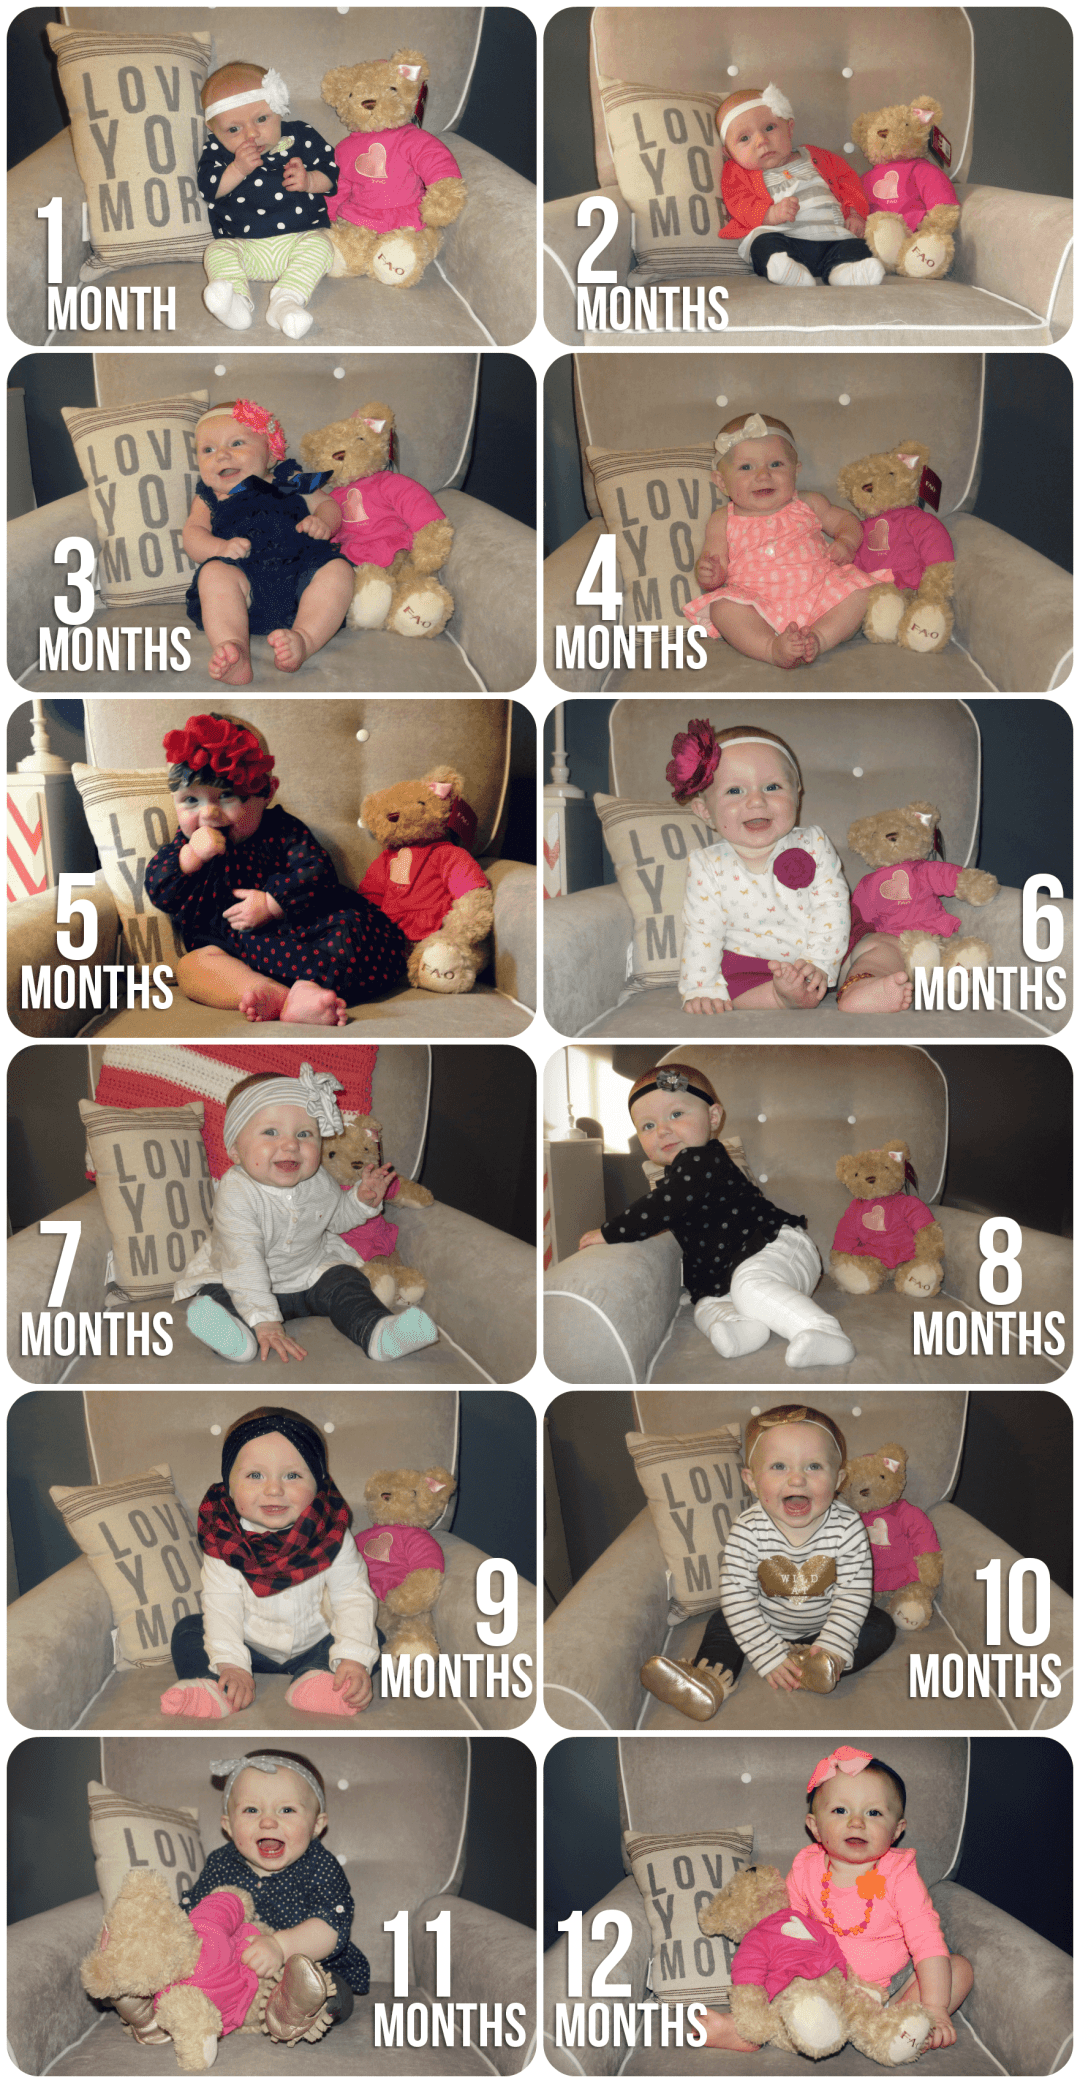 Blaire all 12 months